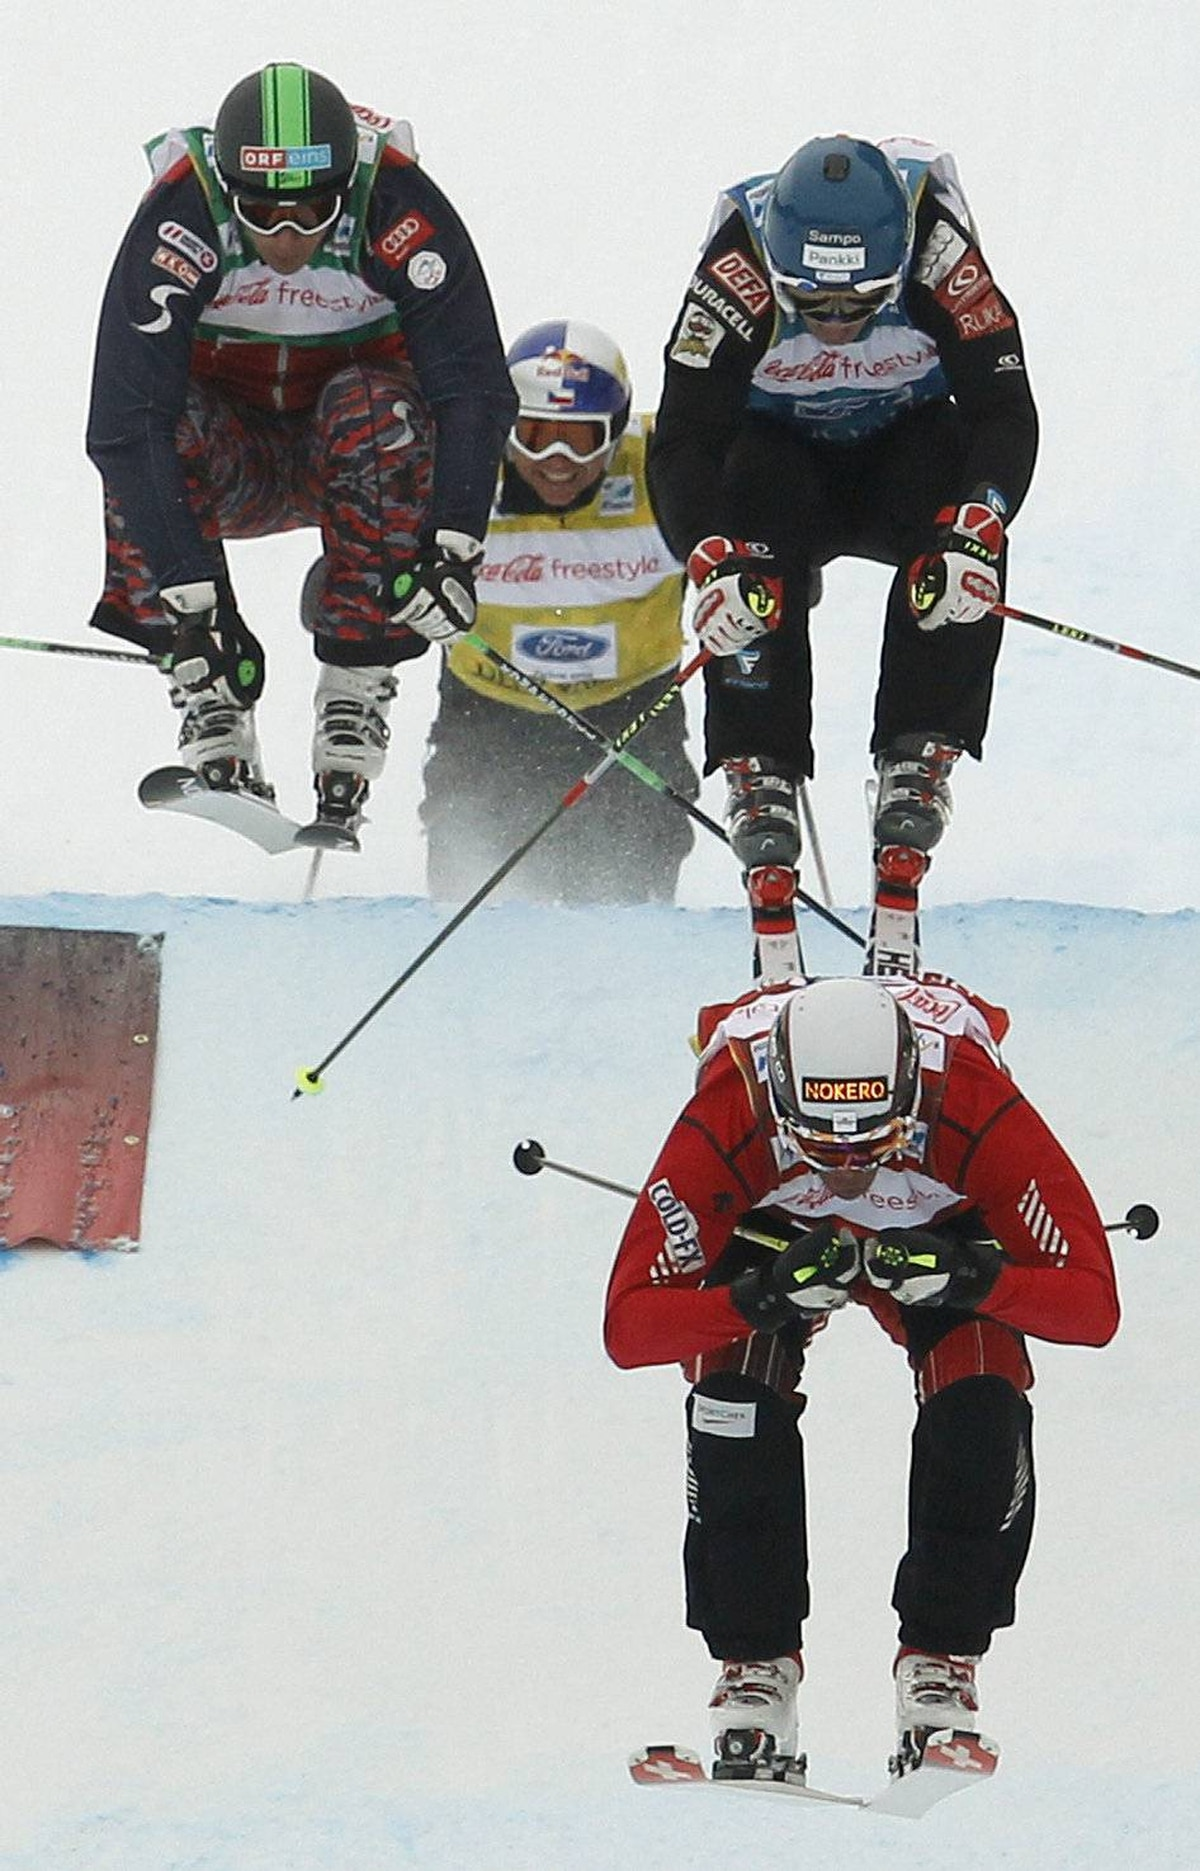 Chris Del Bosco of Canada races to a first place finish in front of second-placed Jouni Pellinen, right, of Finland, third-placed Andreas Matt of Austria, left, and fourth-placed Tomas Kraus of the Czech Republic during the men's ski cross finals at the FIS Freestyle World Championships in Park City, Utah February 4, 2011.